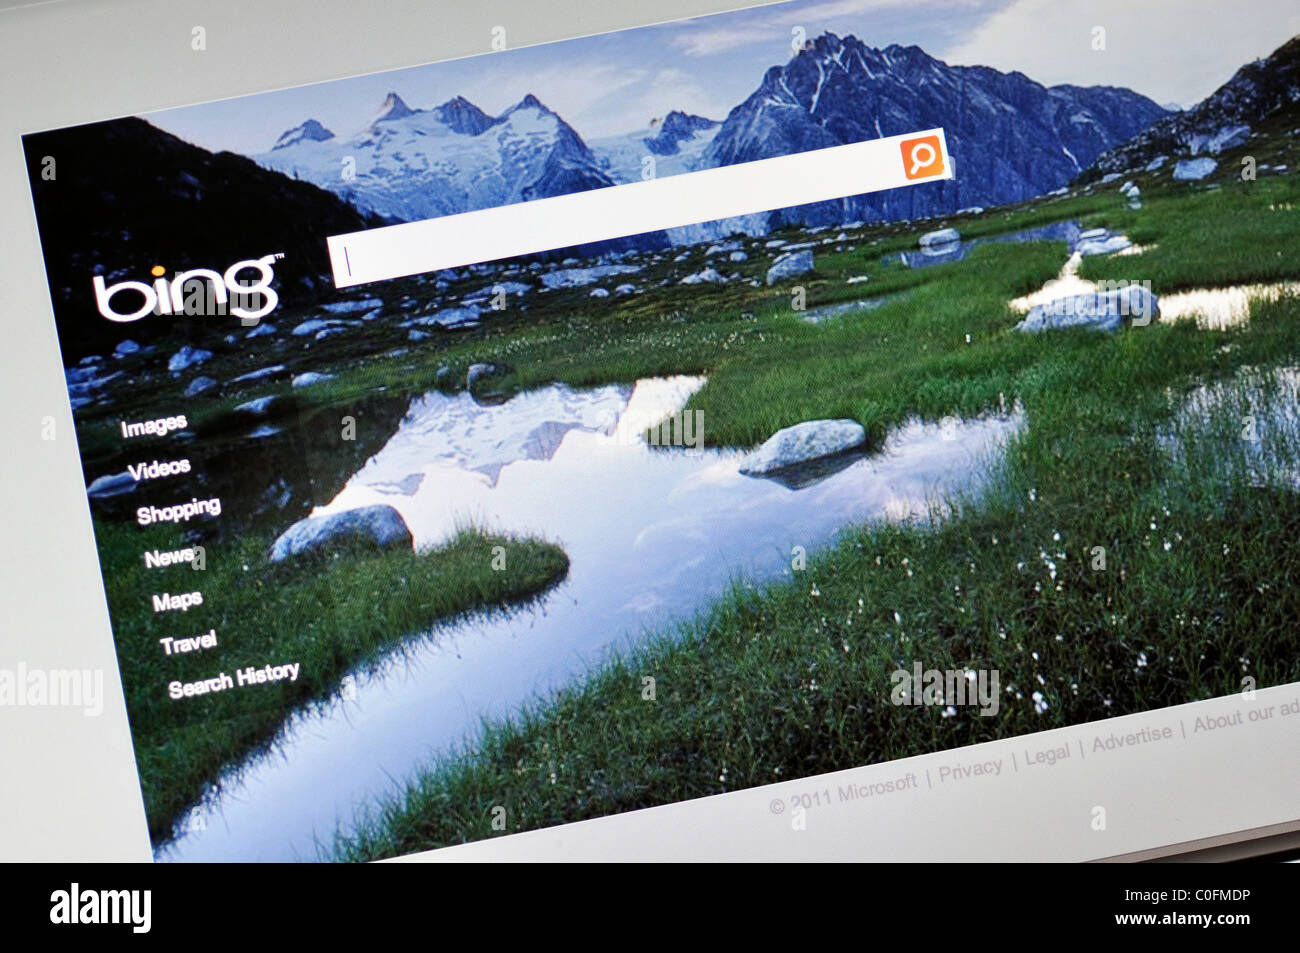 Bing Search Engine Stock Photos & Bing Search Engine Stock